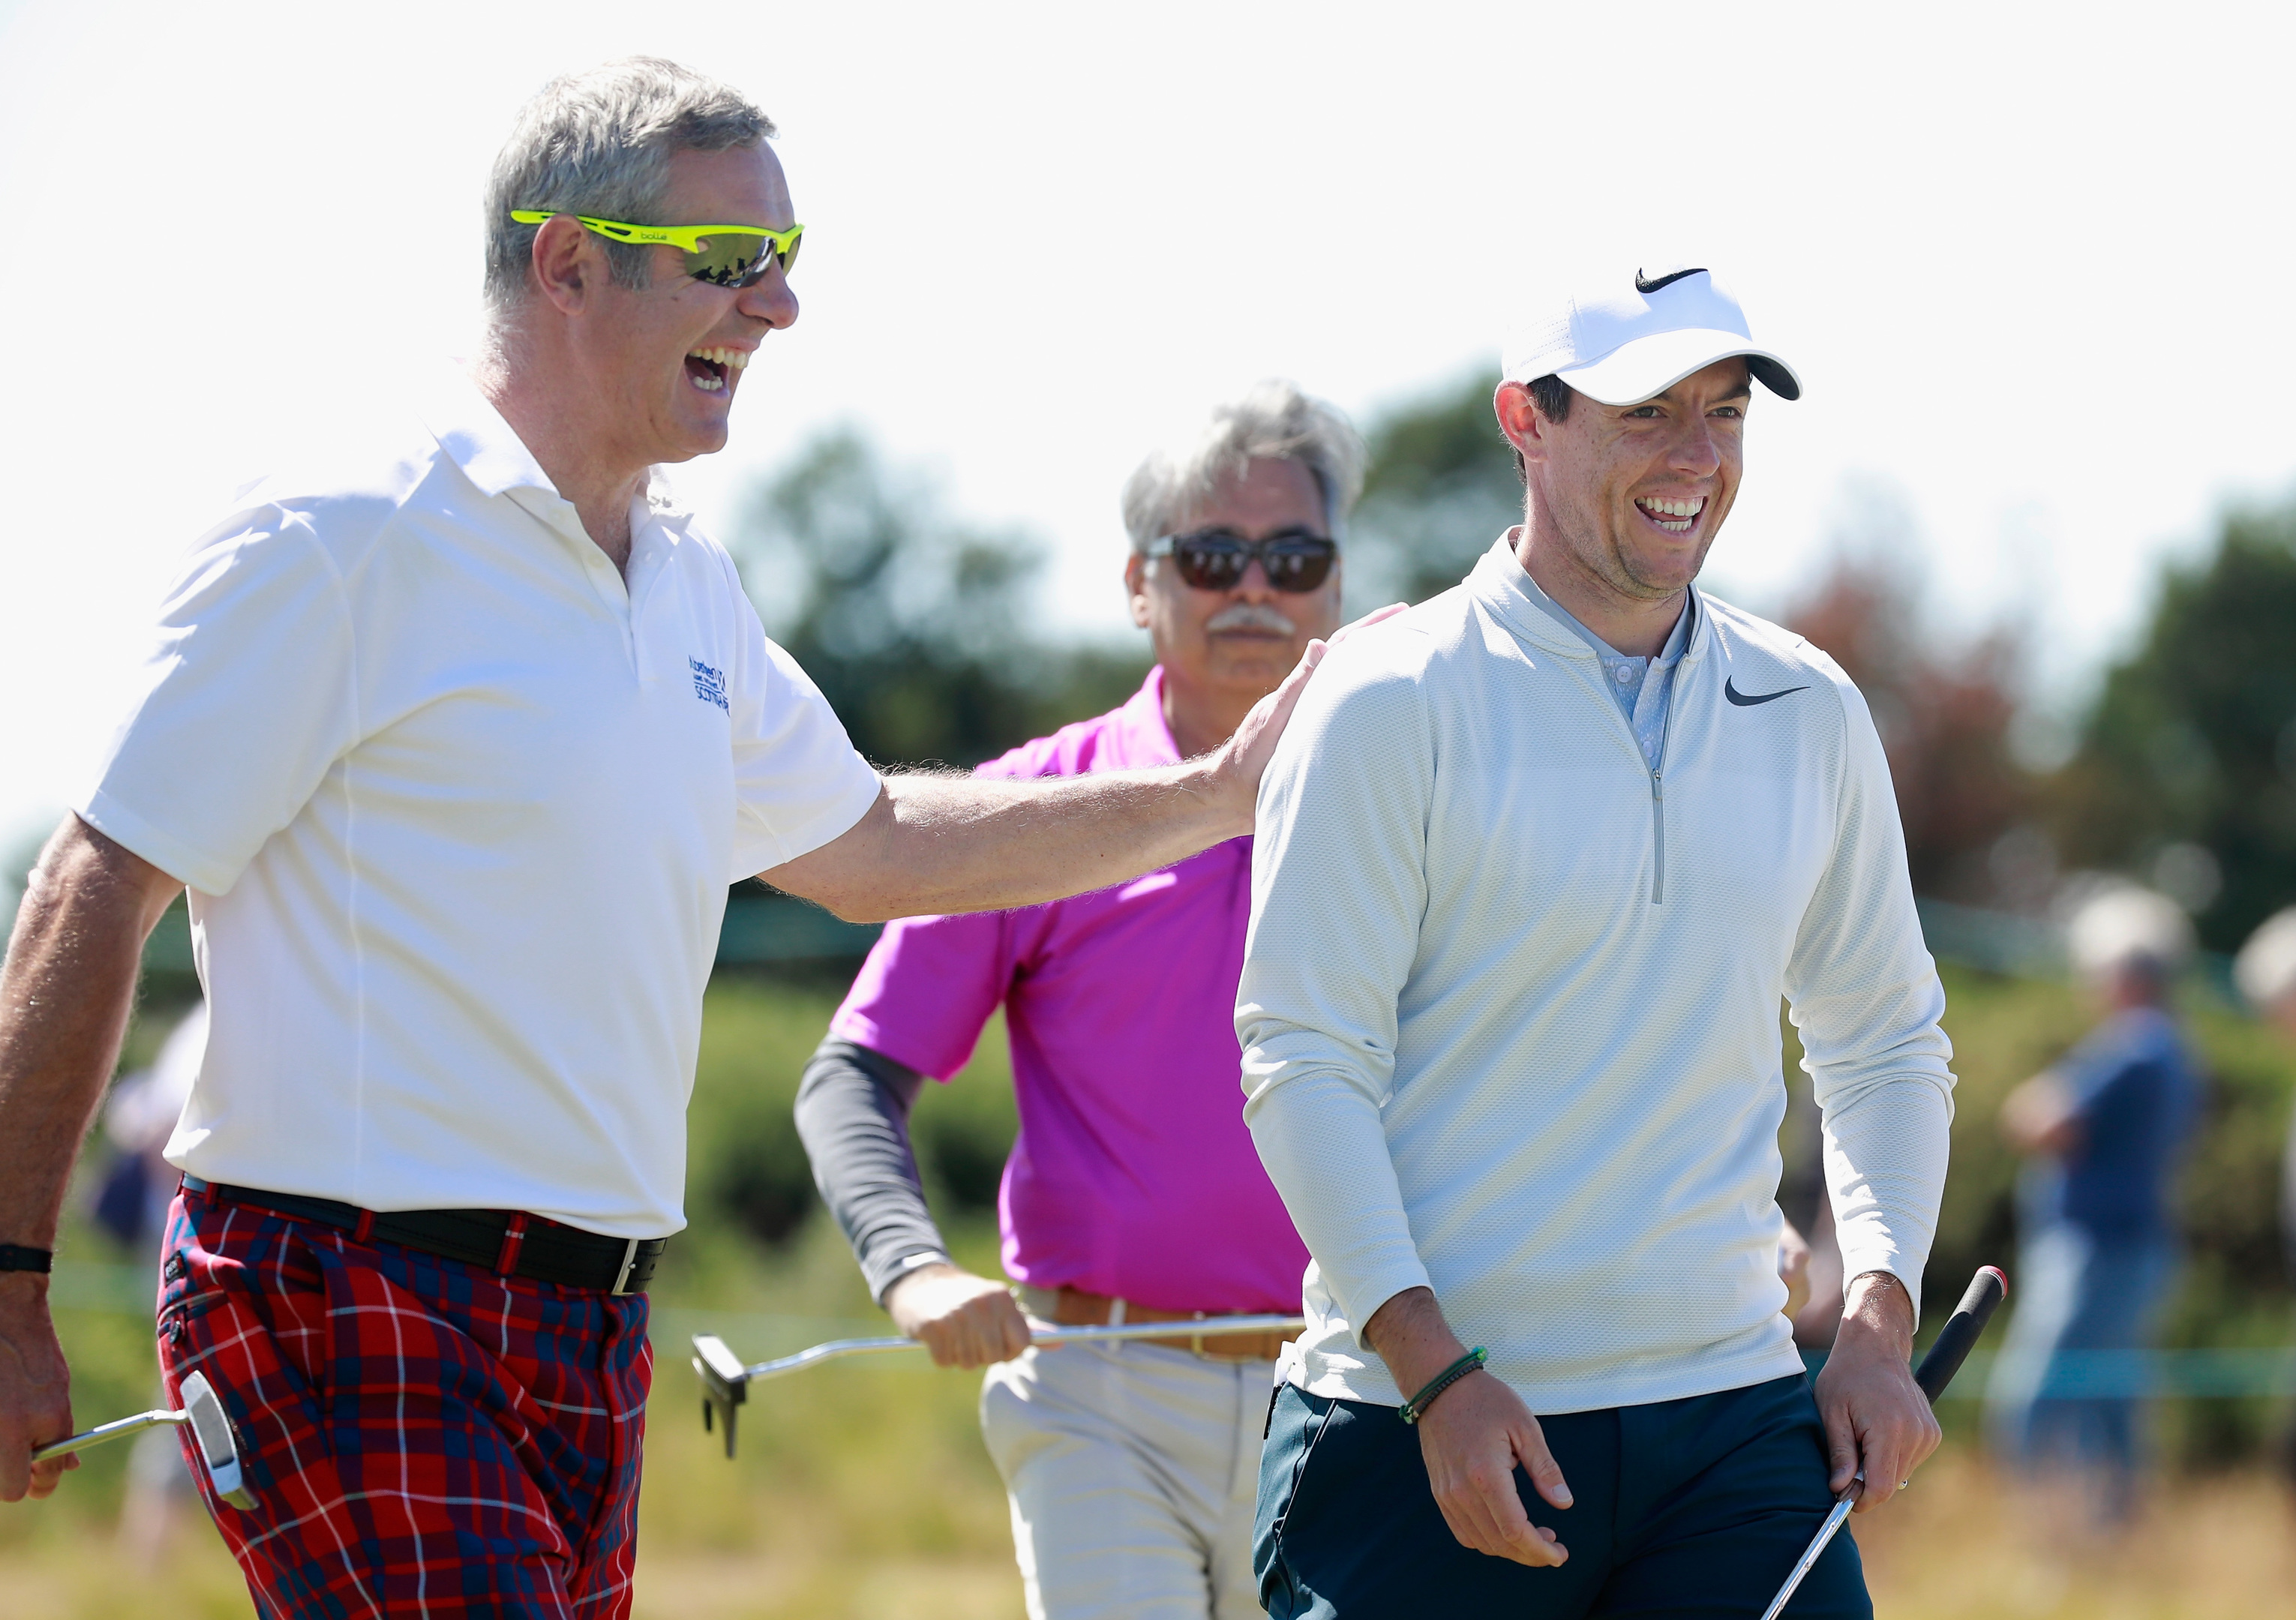 Rory McIlroy and former Sctoland and Lions caotain Gavin Hastings enjoying the Scottish Open pro-am at Dundonald Links.